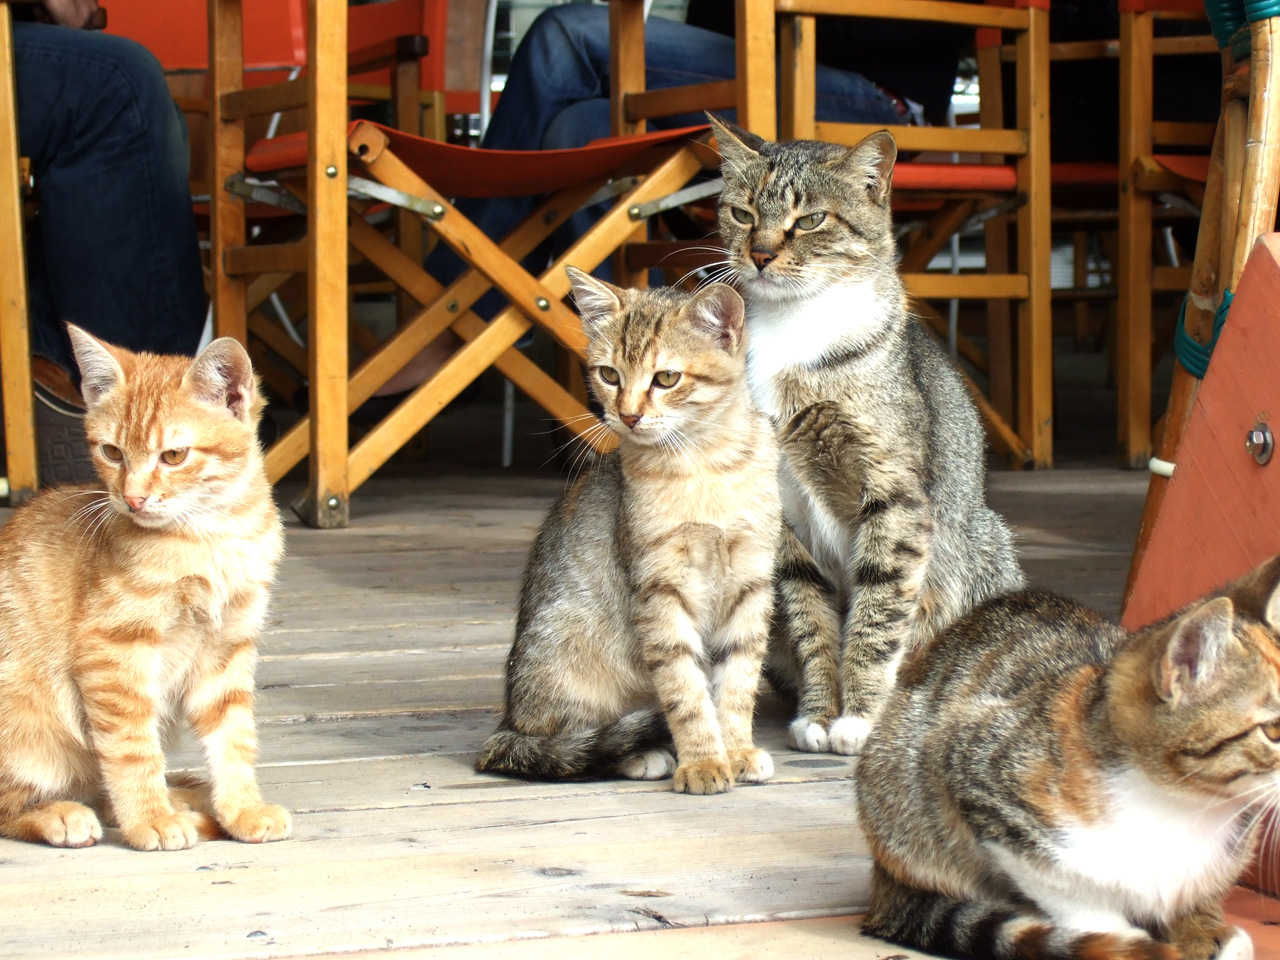 Cats of Italy